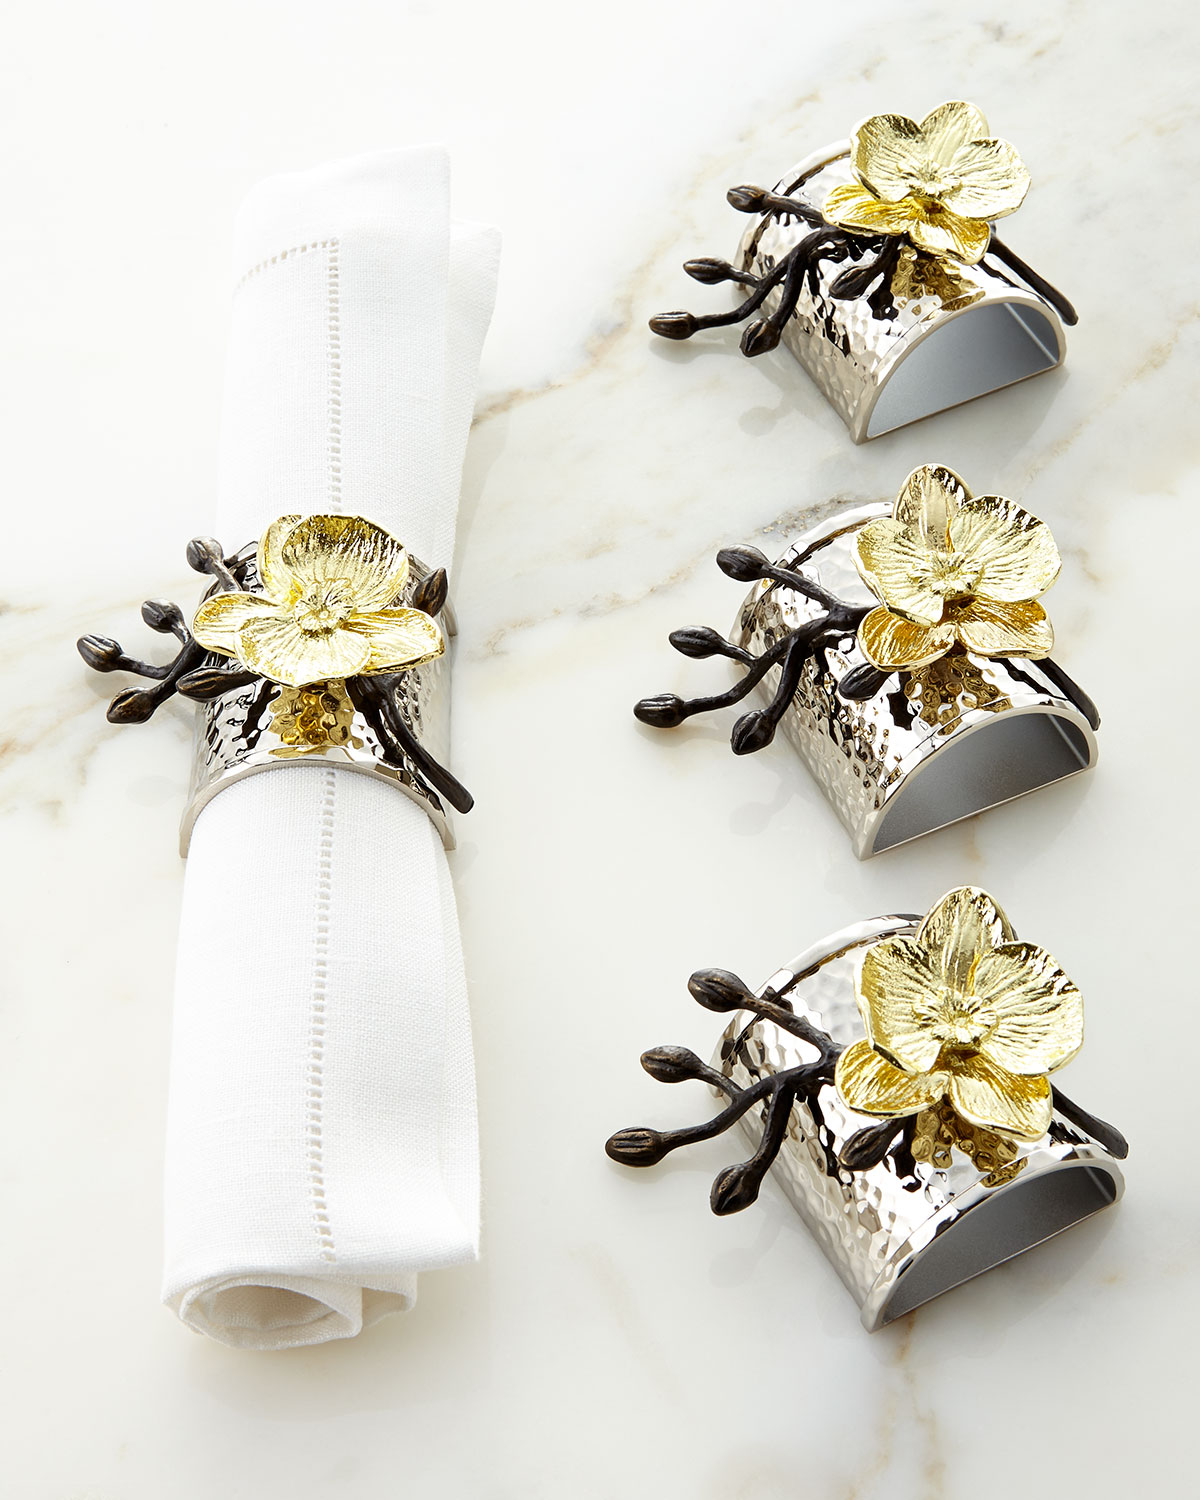 Michael Aram Clothing FOUR GOLD ORCHID NAPKIN RINGS